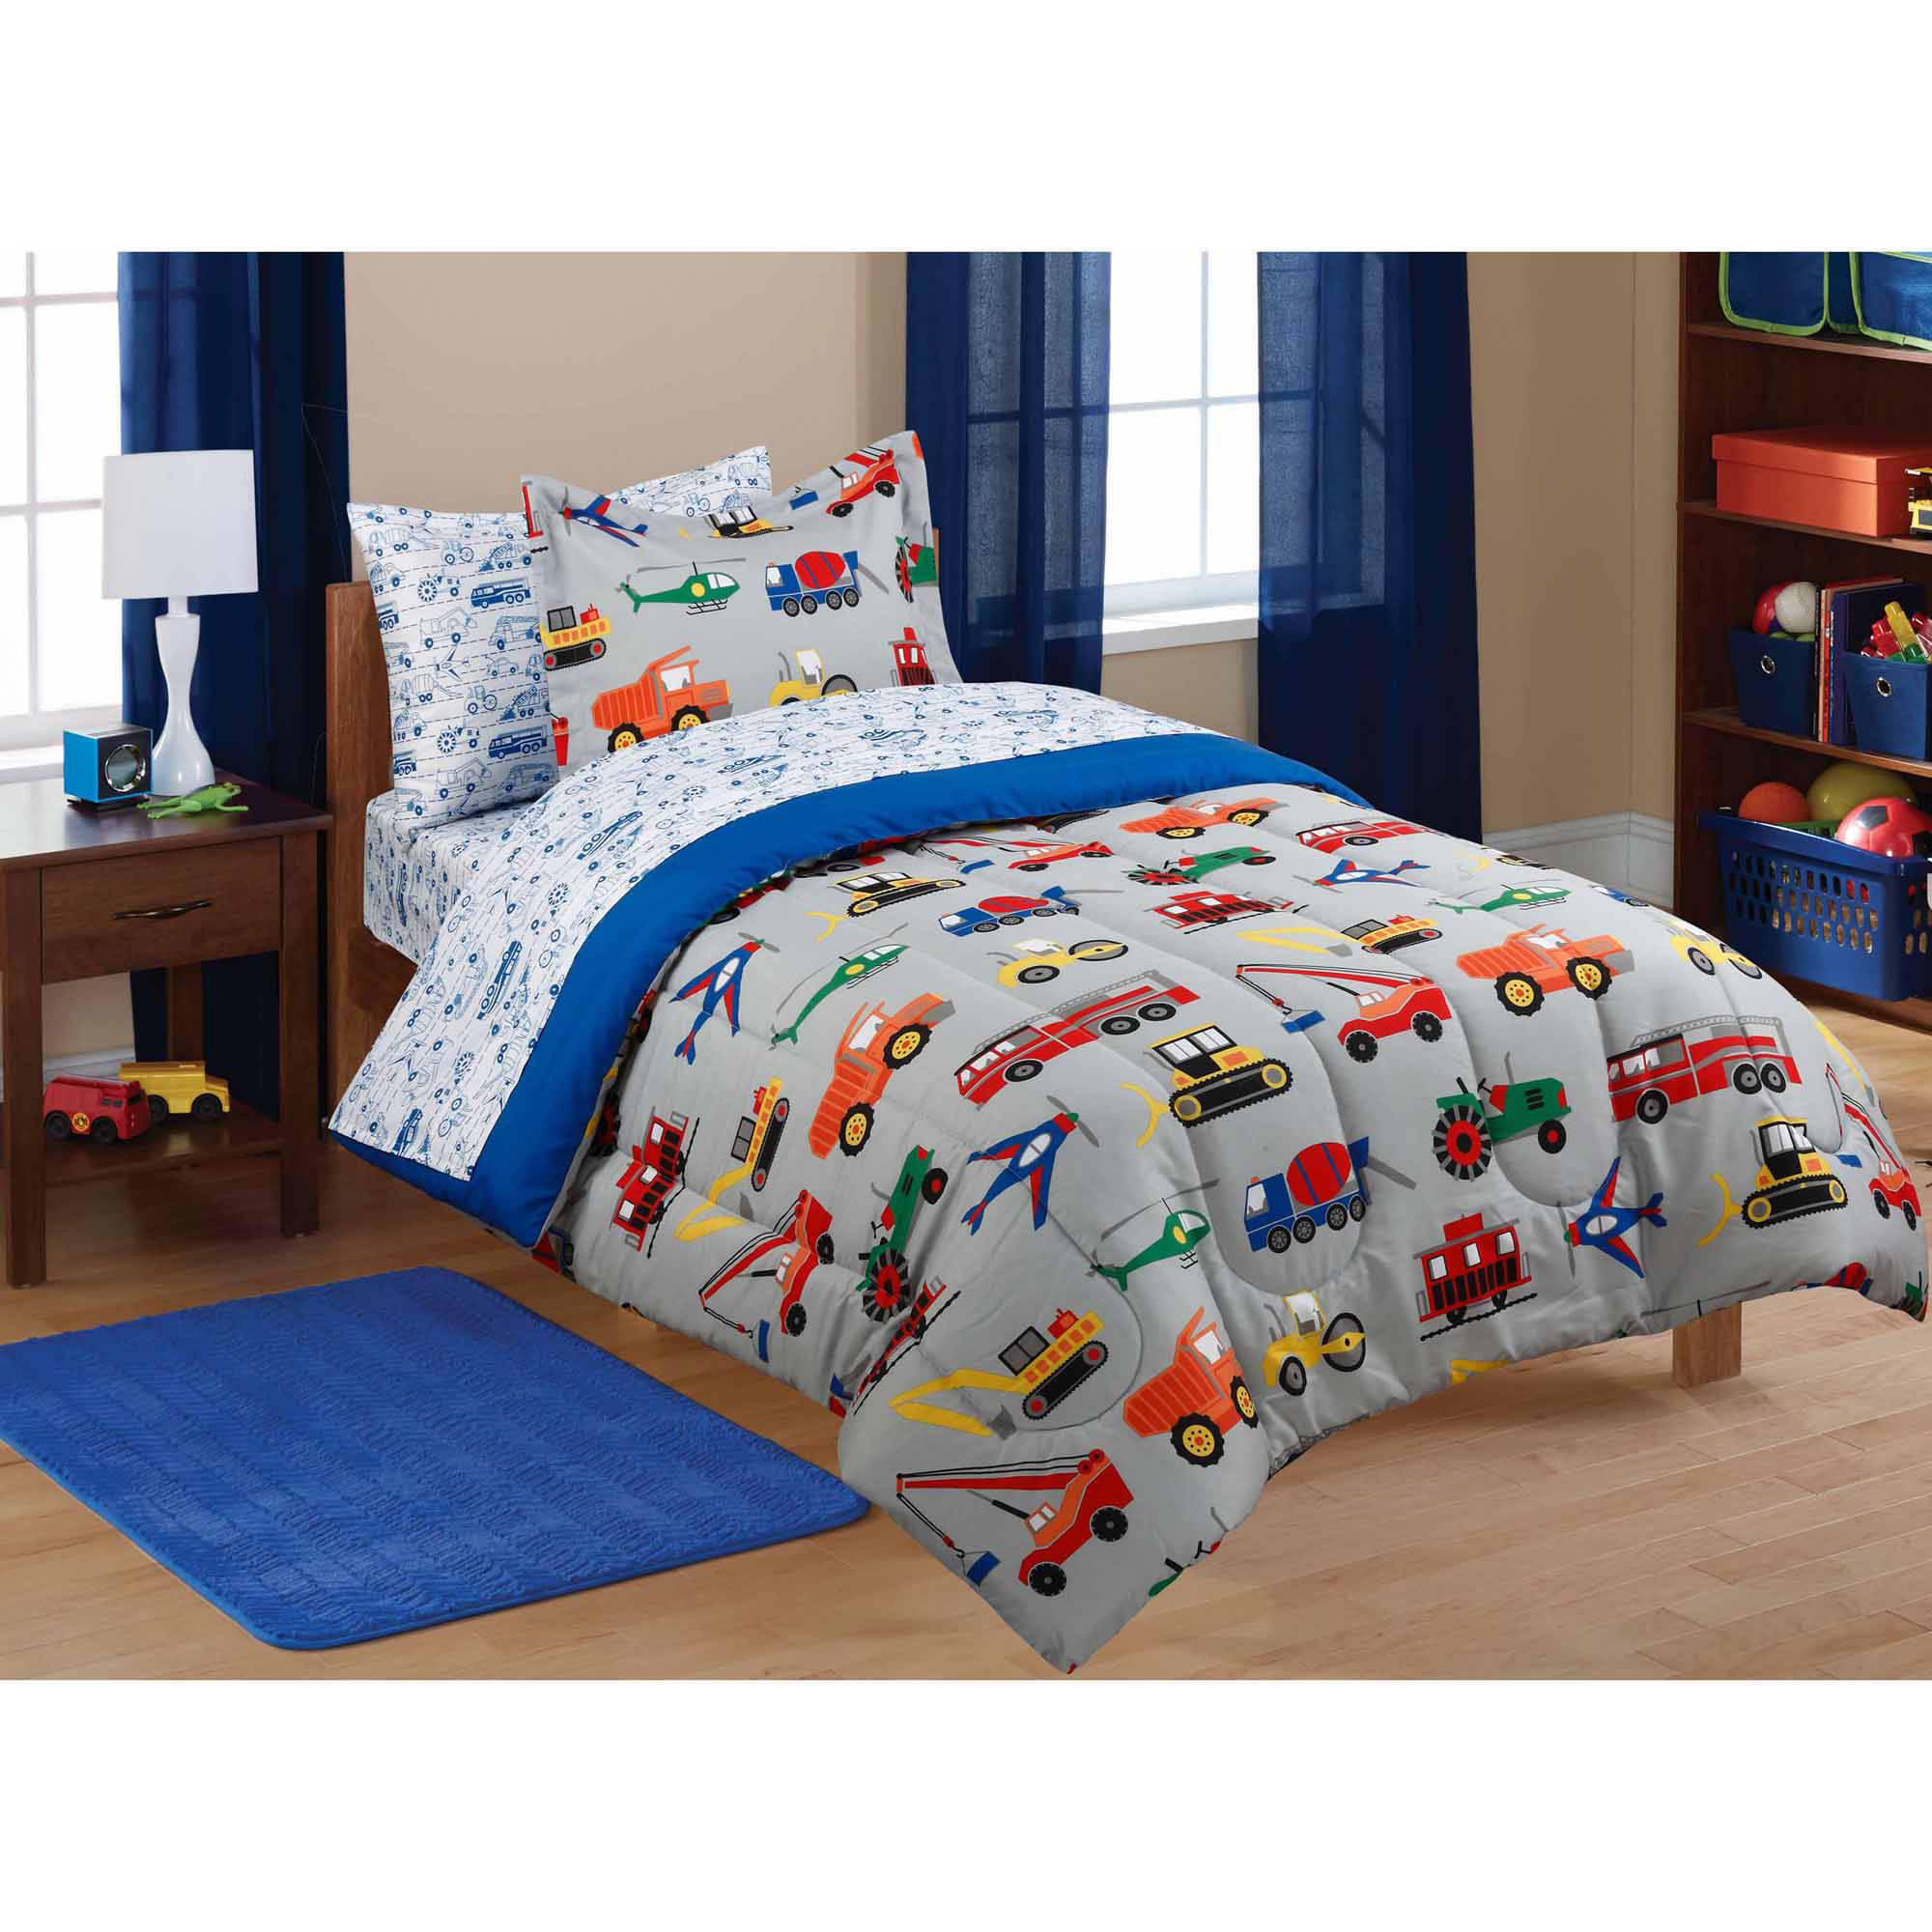 kids bedding mainstays kidsu0027 transportation coordinated bed in a bag - walmart.com MZBPAES